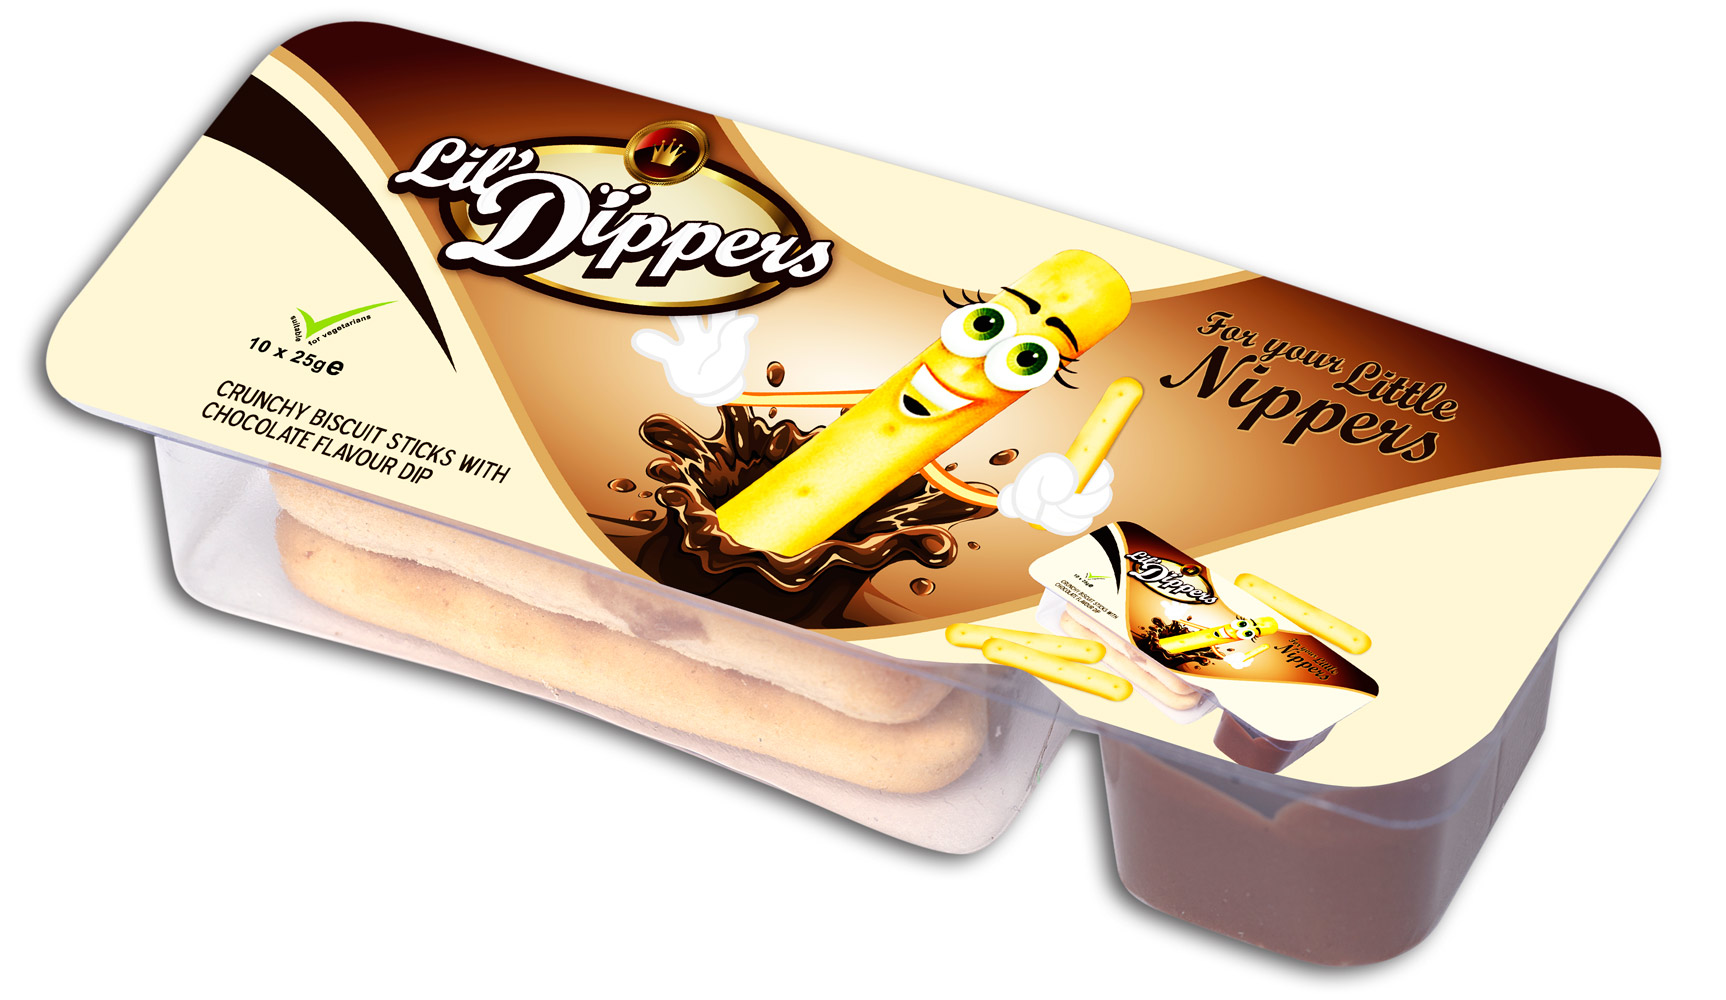 Packaging Design by lagalag - Entry No. 23 in the Packaging Design Contest Inspiring Packaging Design for Lil' Dippers.